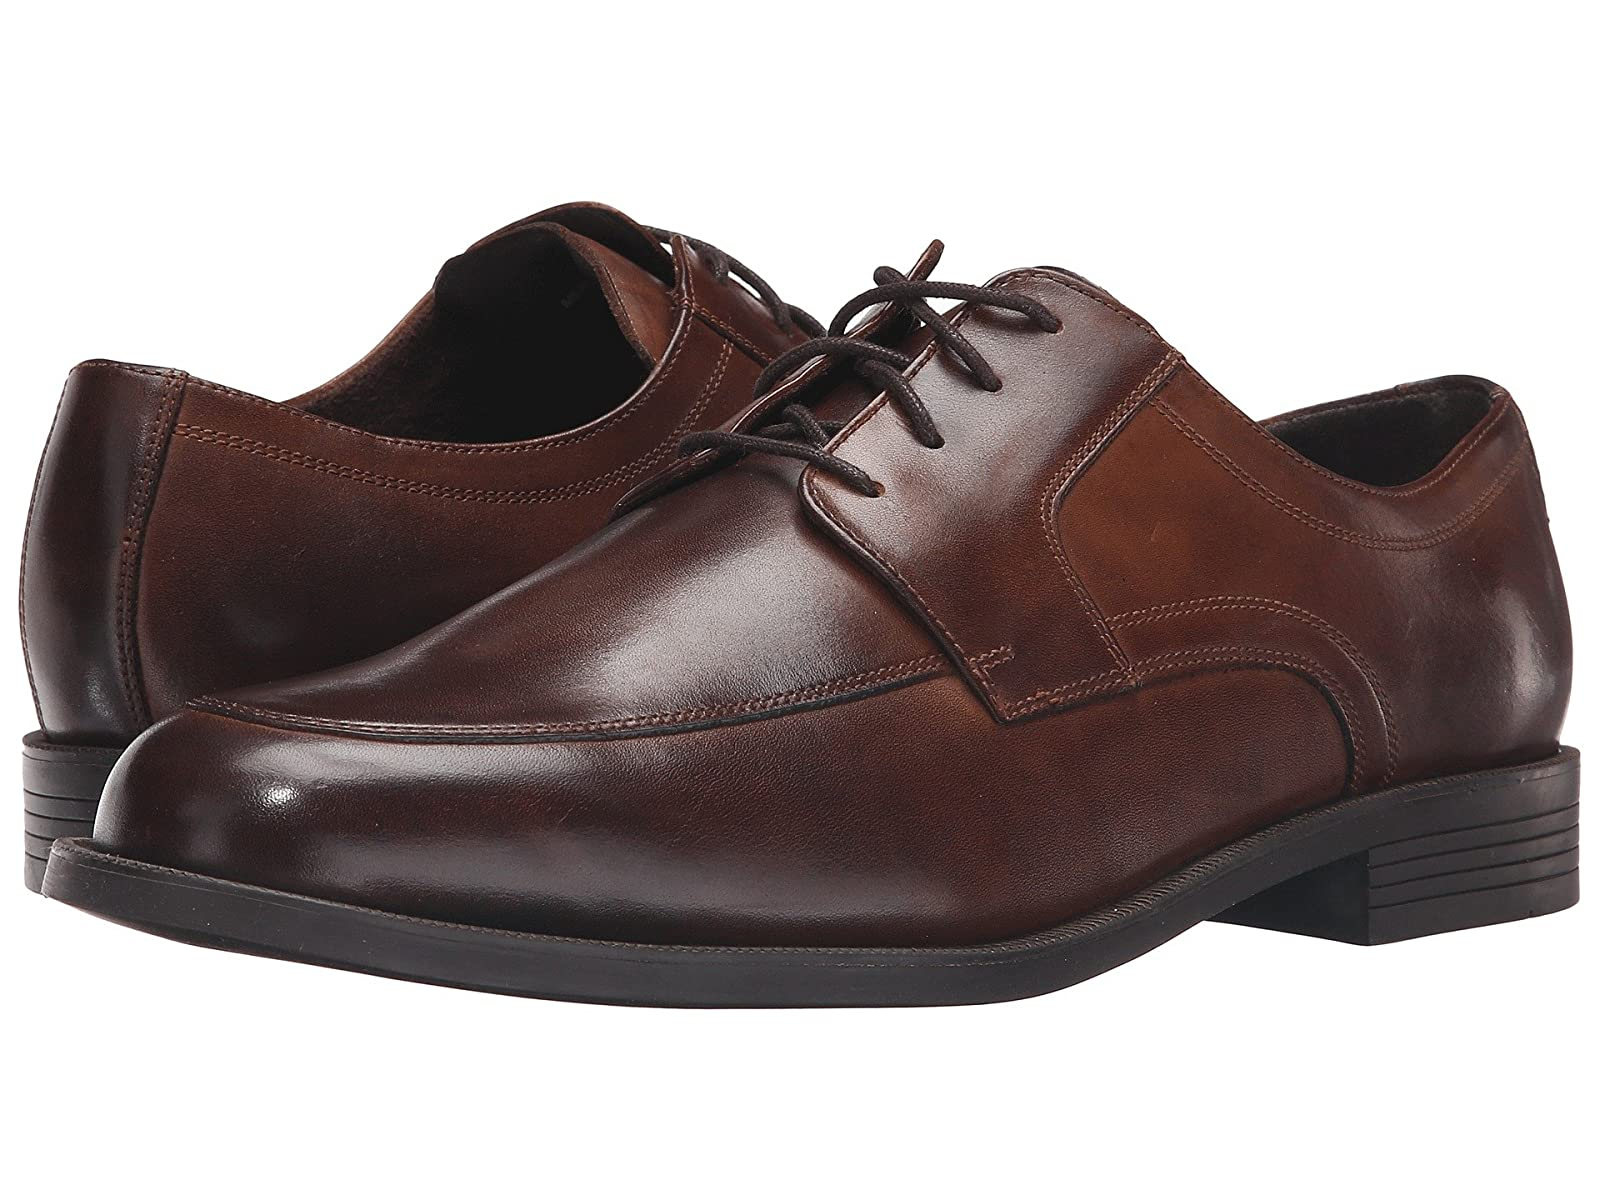 Cole Haan Dustin Apron OxCheap and distinctive eye-catching shoes